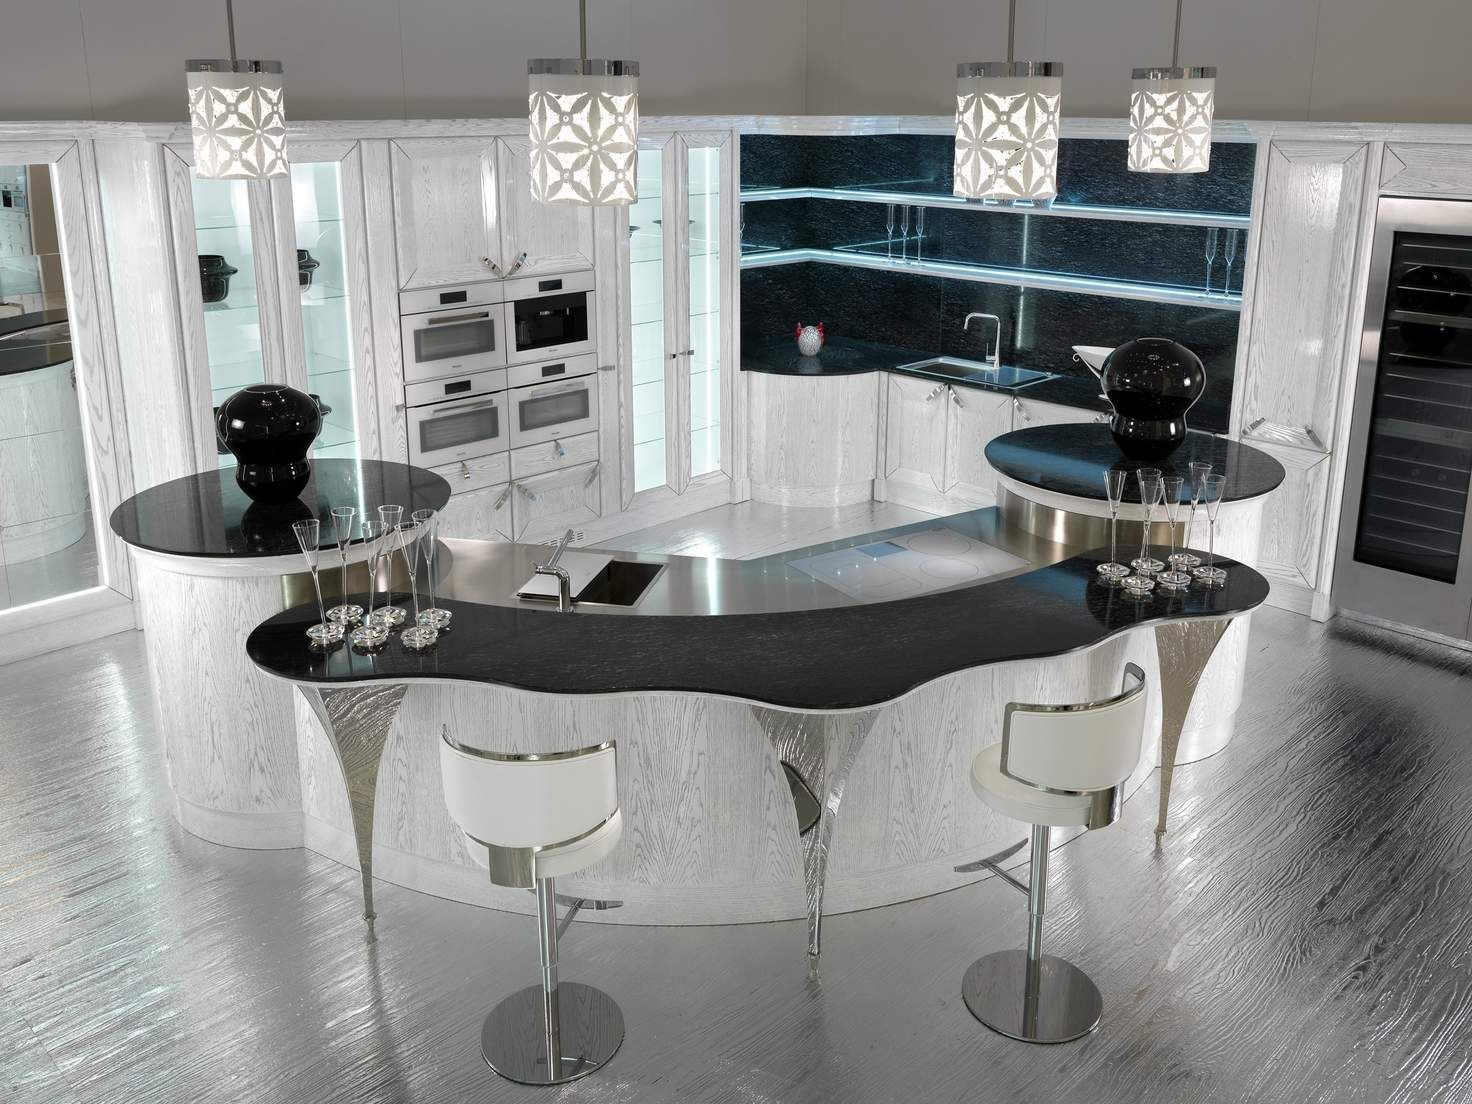 Lacquered oak kitchen with island dolce vita by brummel cucine